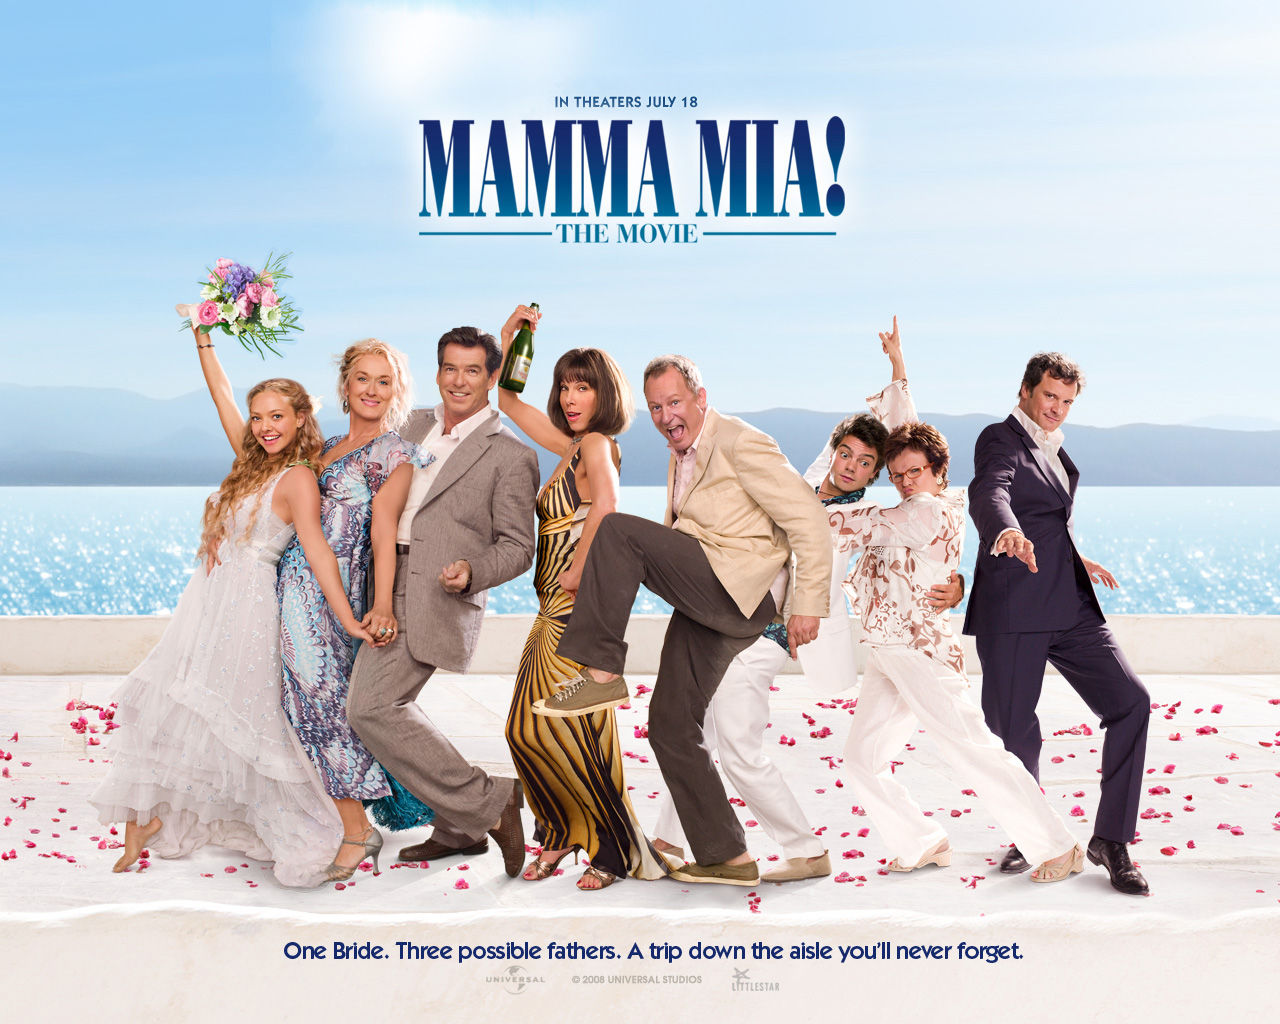 Mamma Mia! movie